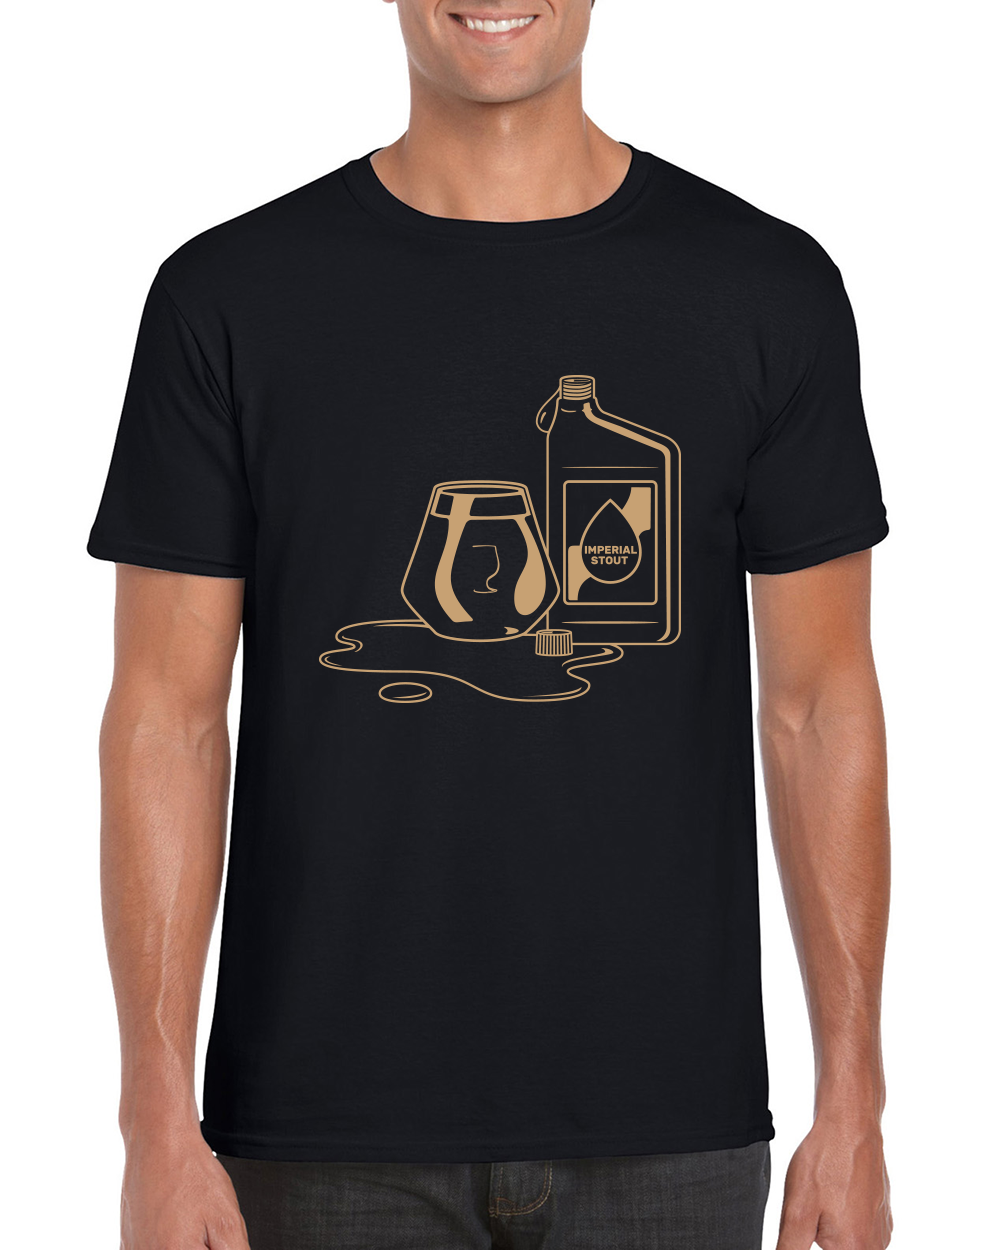 Best Stout Beer Shirts and Best Craft Beer T Shirts